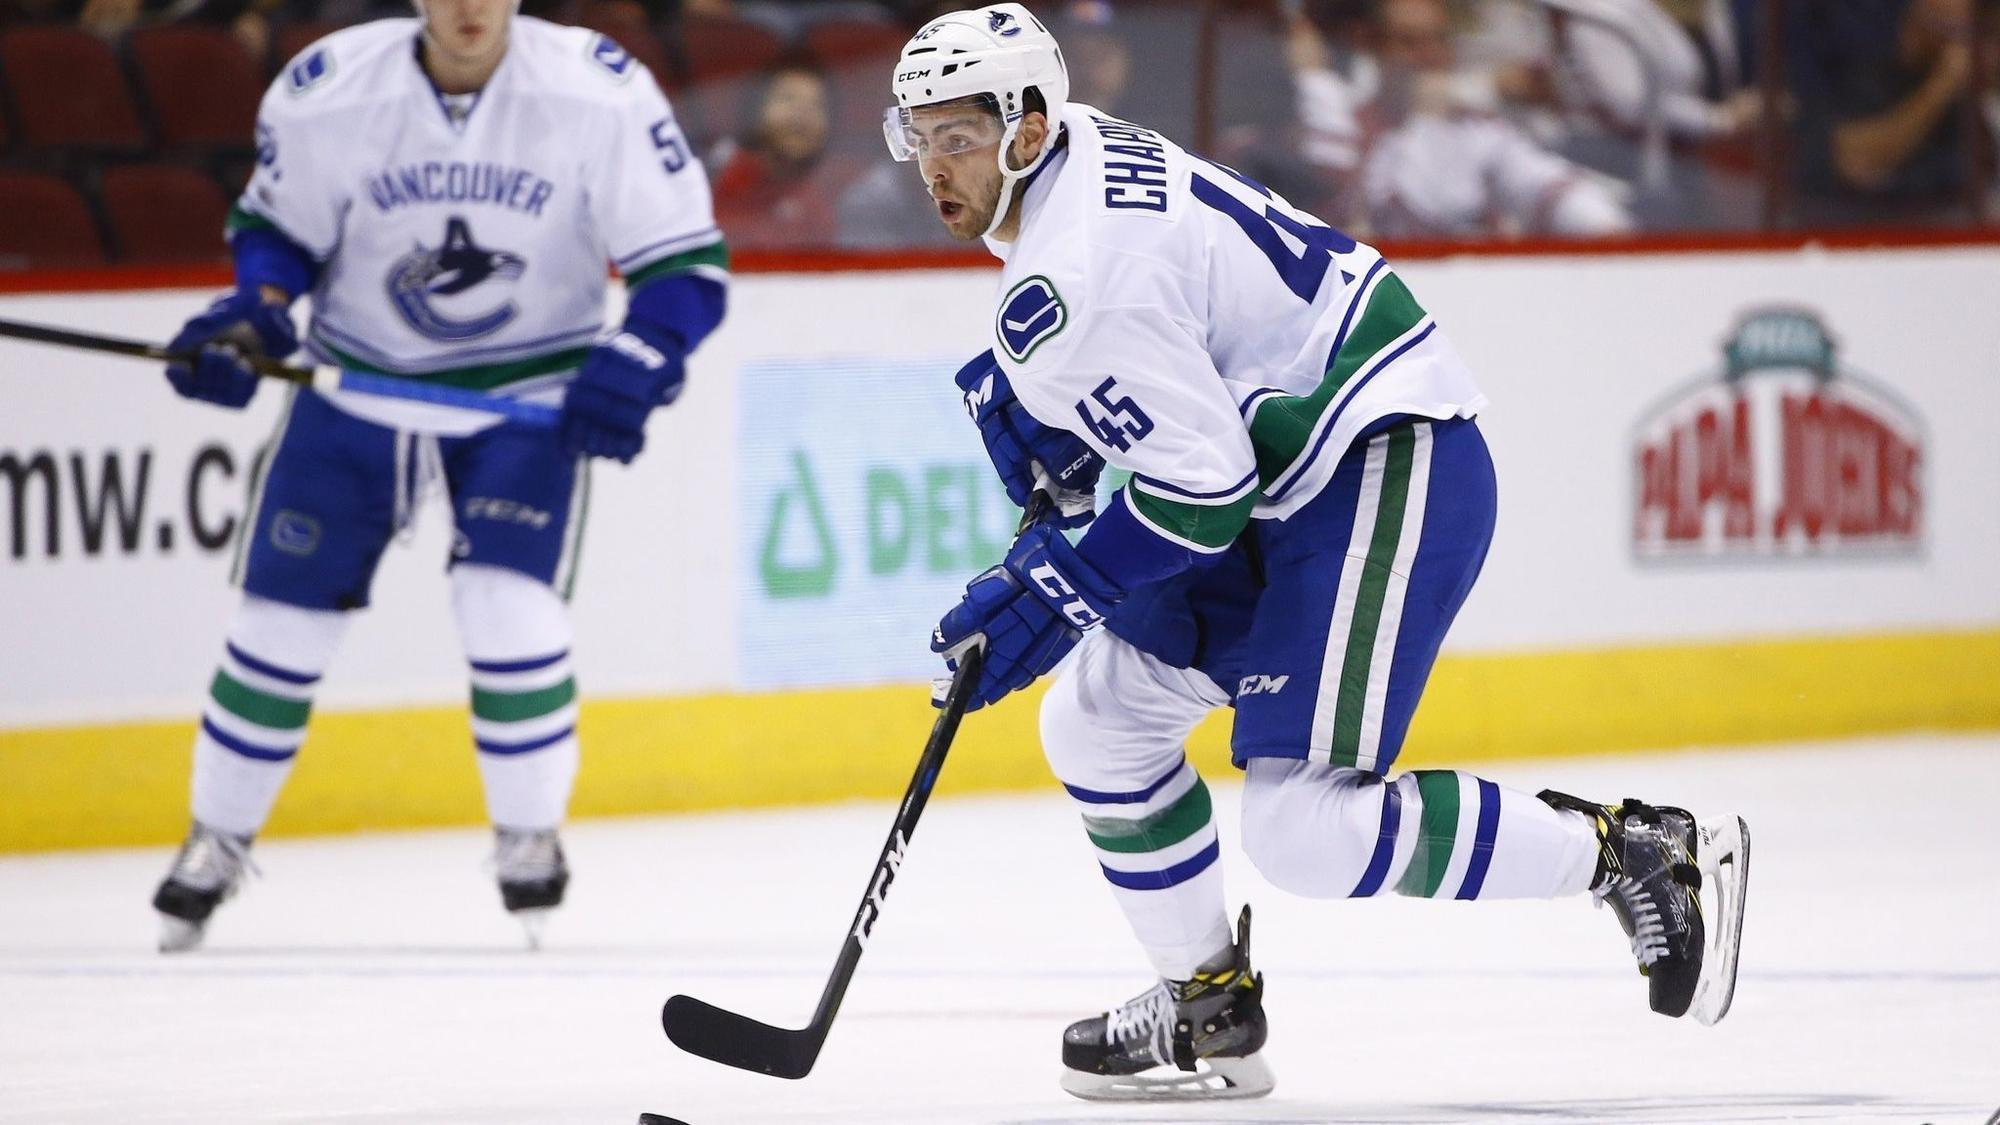 Blackhawks acquire Michael Chaput from Canucks for Tanner Kero